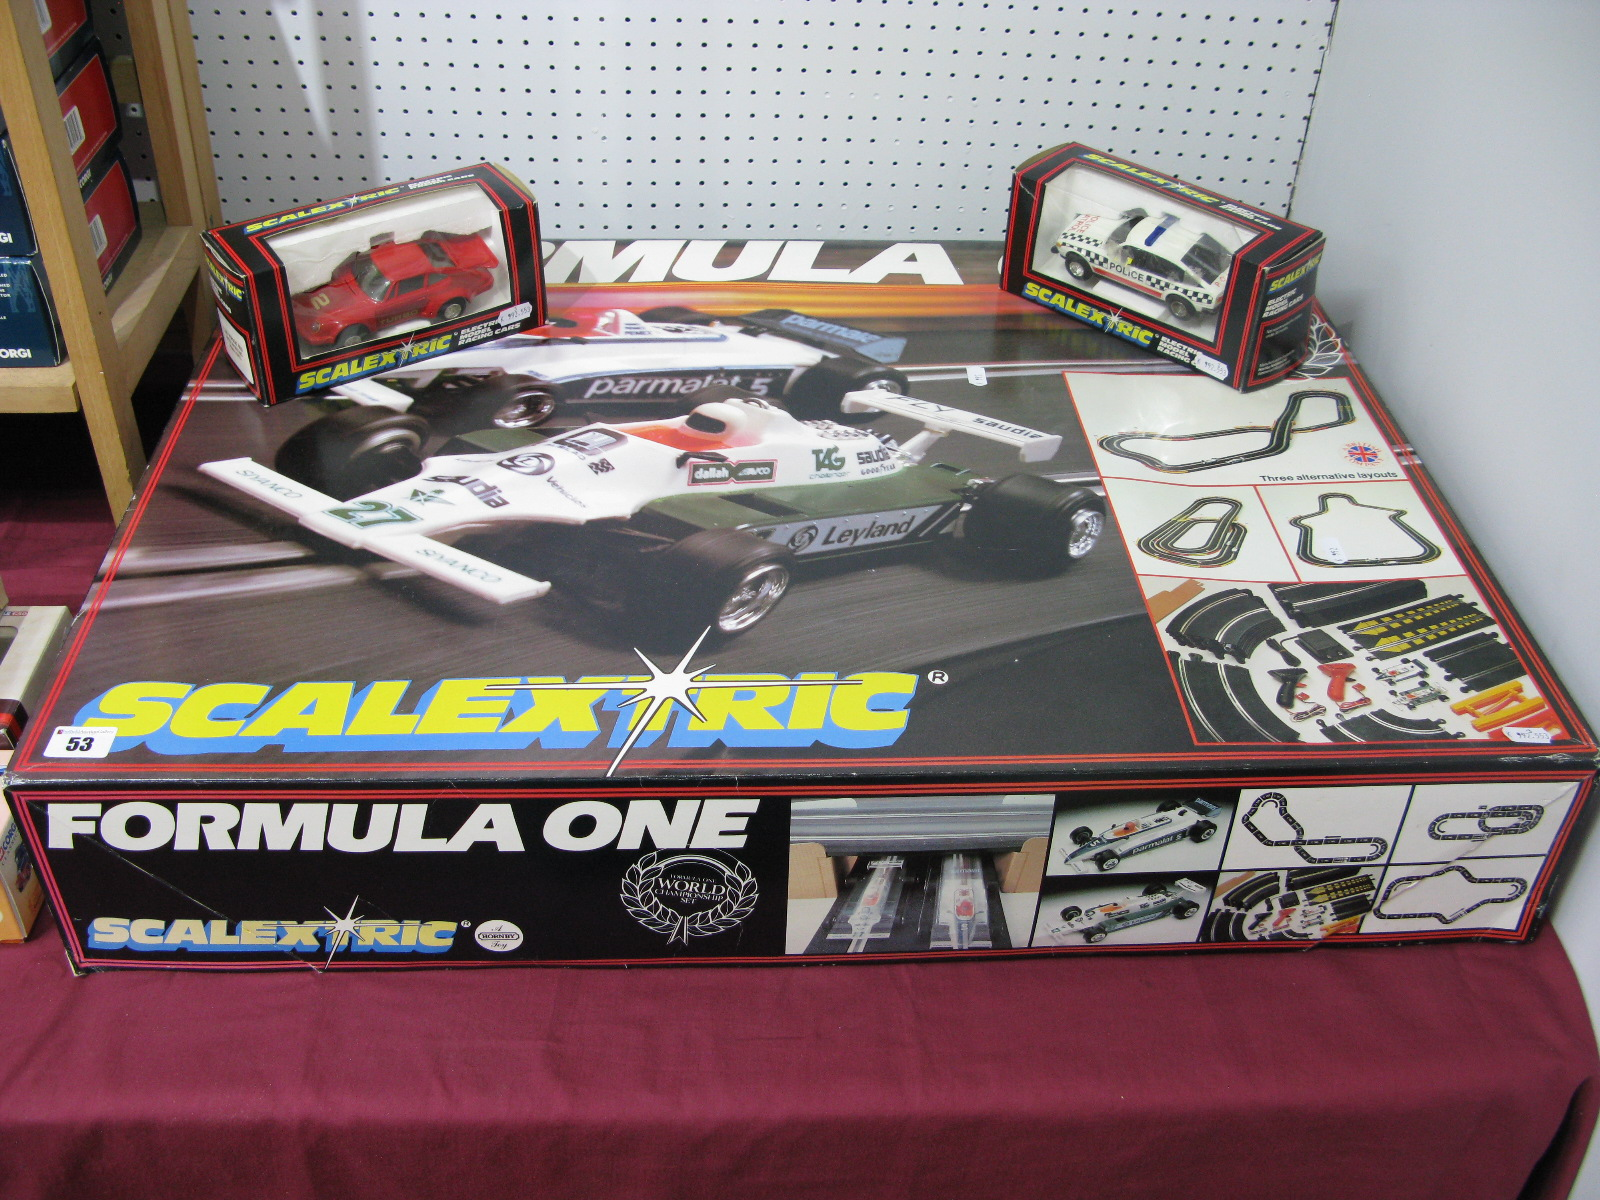 Lot 53 - A boxed Scalextric Formula One Racing Set, including one Brabham, one Williams, track, unchecked,